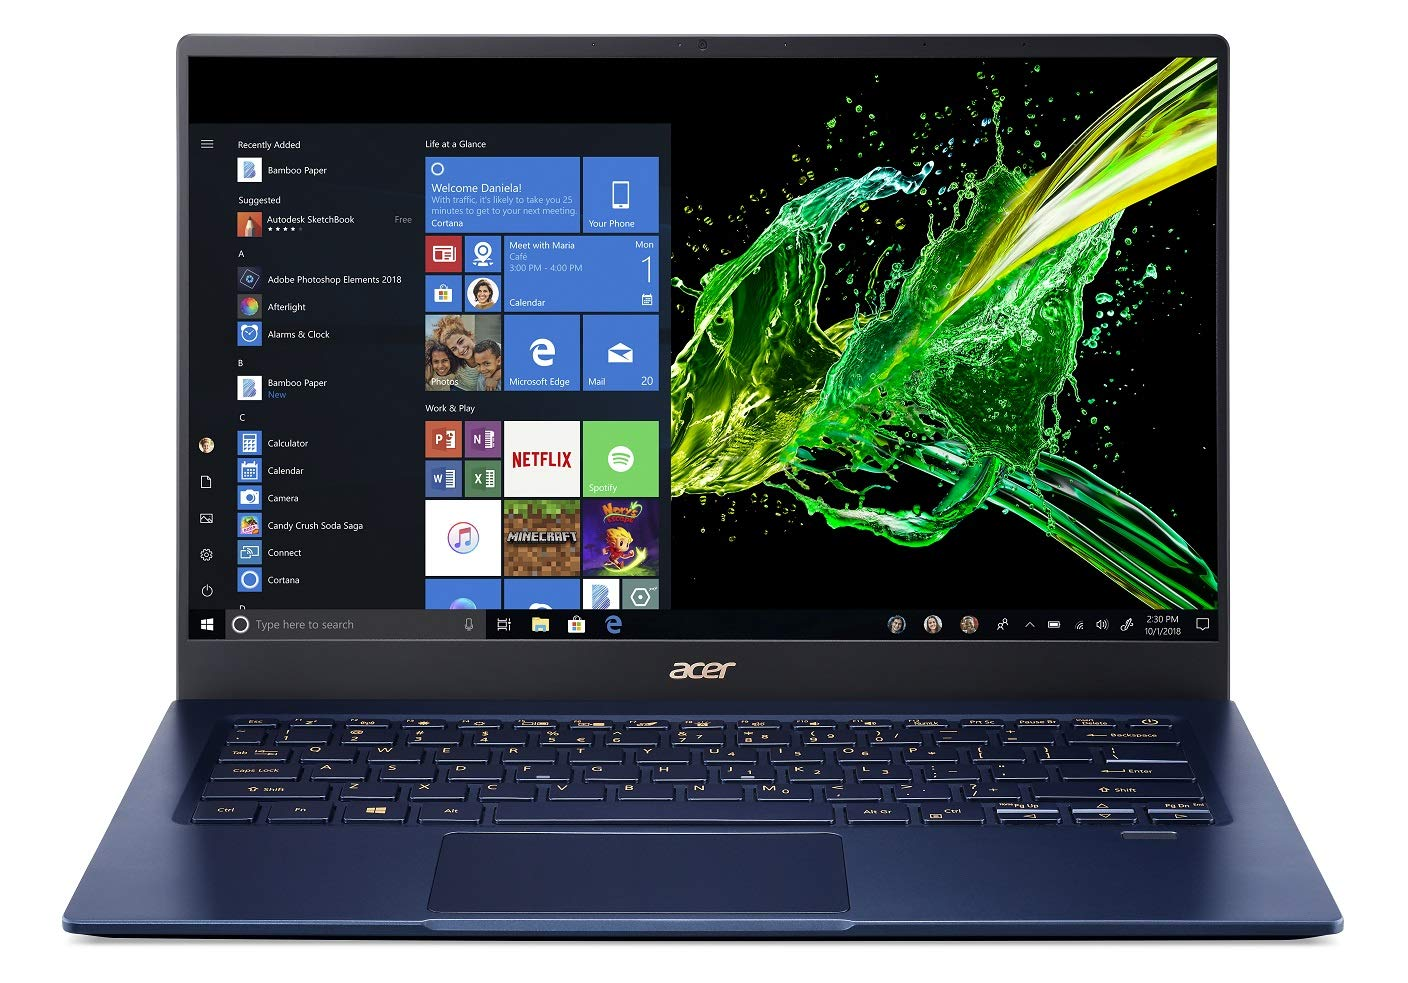 Buy Acer Swift 5 10th Gen Core i5 14-inch Thin and Light Laptop (8GB/512GB  SSD/Windows 10/Charcoal Blue/0.99kg), SF514-54T Online at Low Prices in  India - Amazon.in